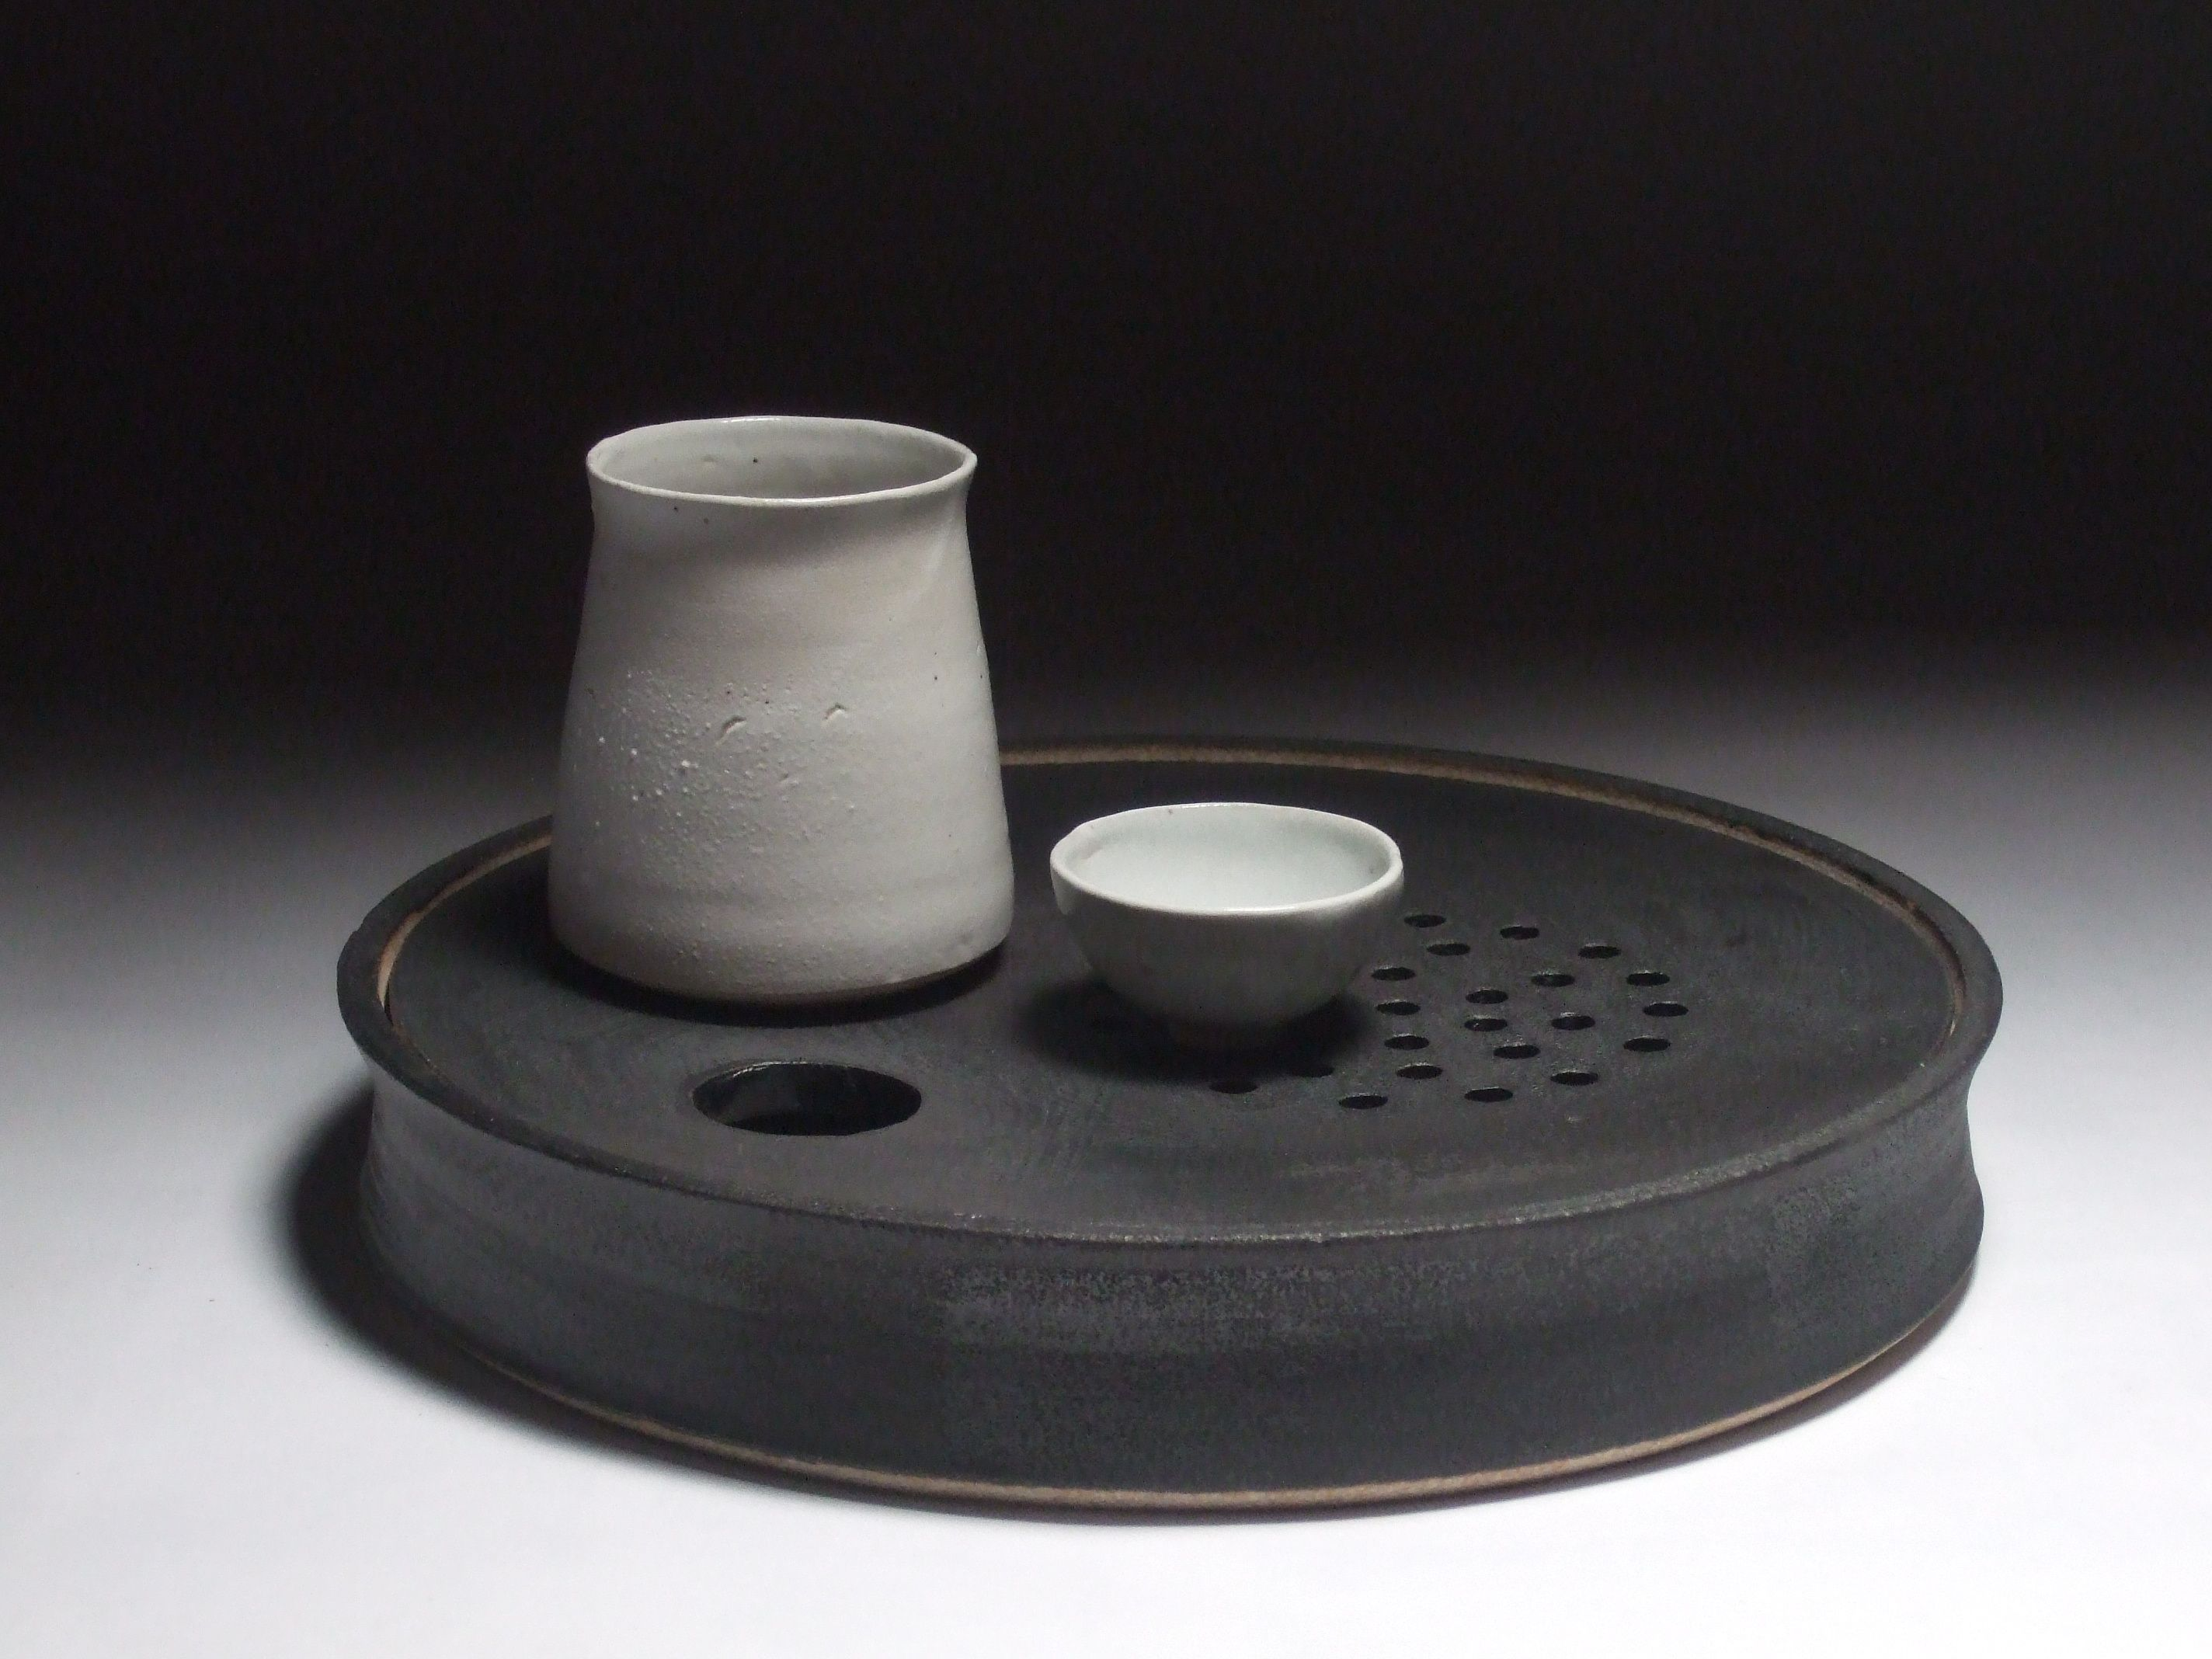 Stoneware Ceramic Gongfu Tea Tray Pitcher And Teacup